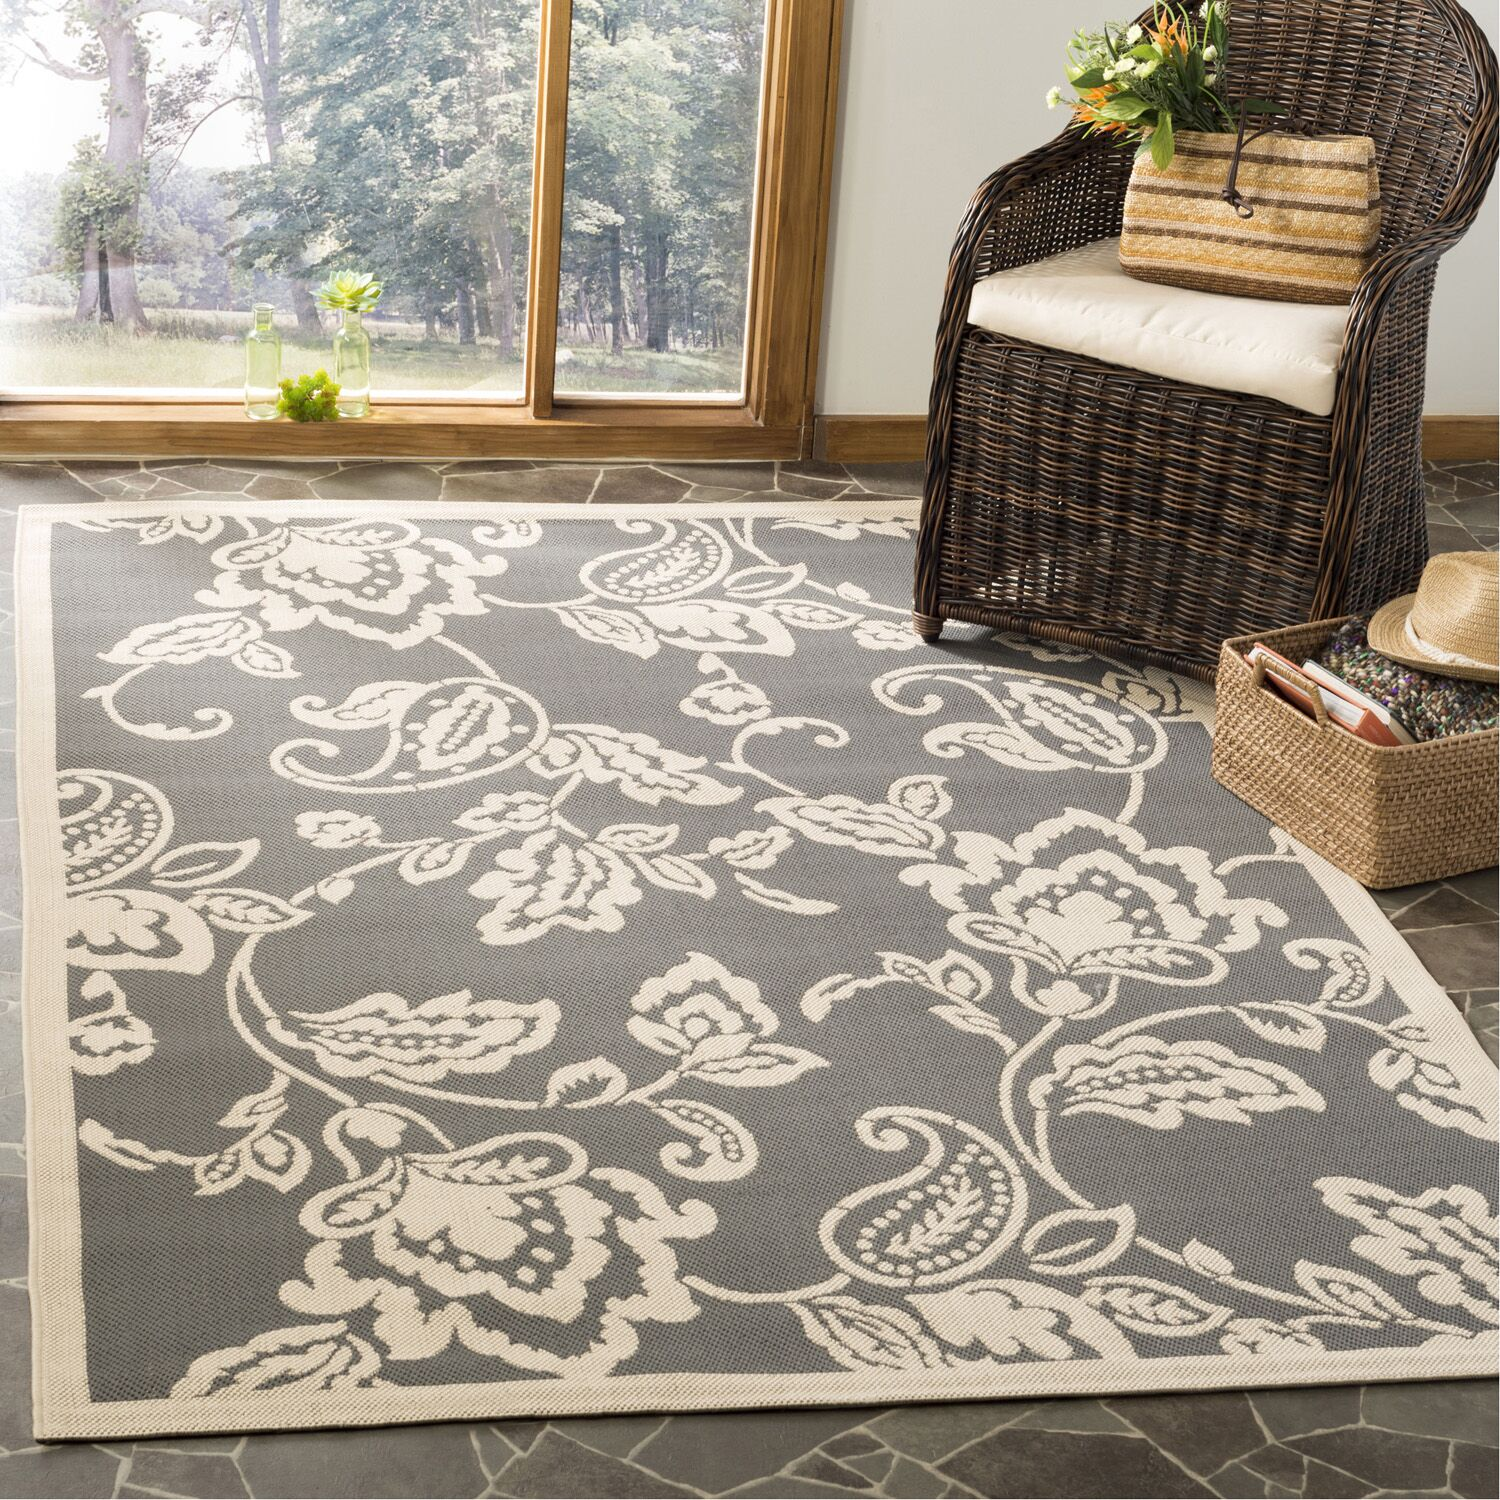 Highland Lily Anthracite/Beige Area Rug Rug Size: Rectangle 5'3